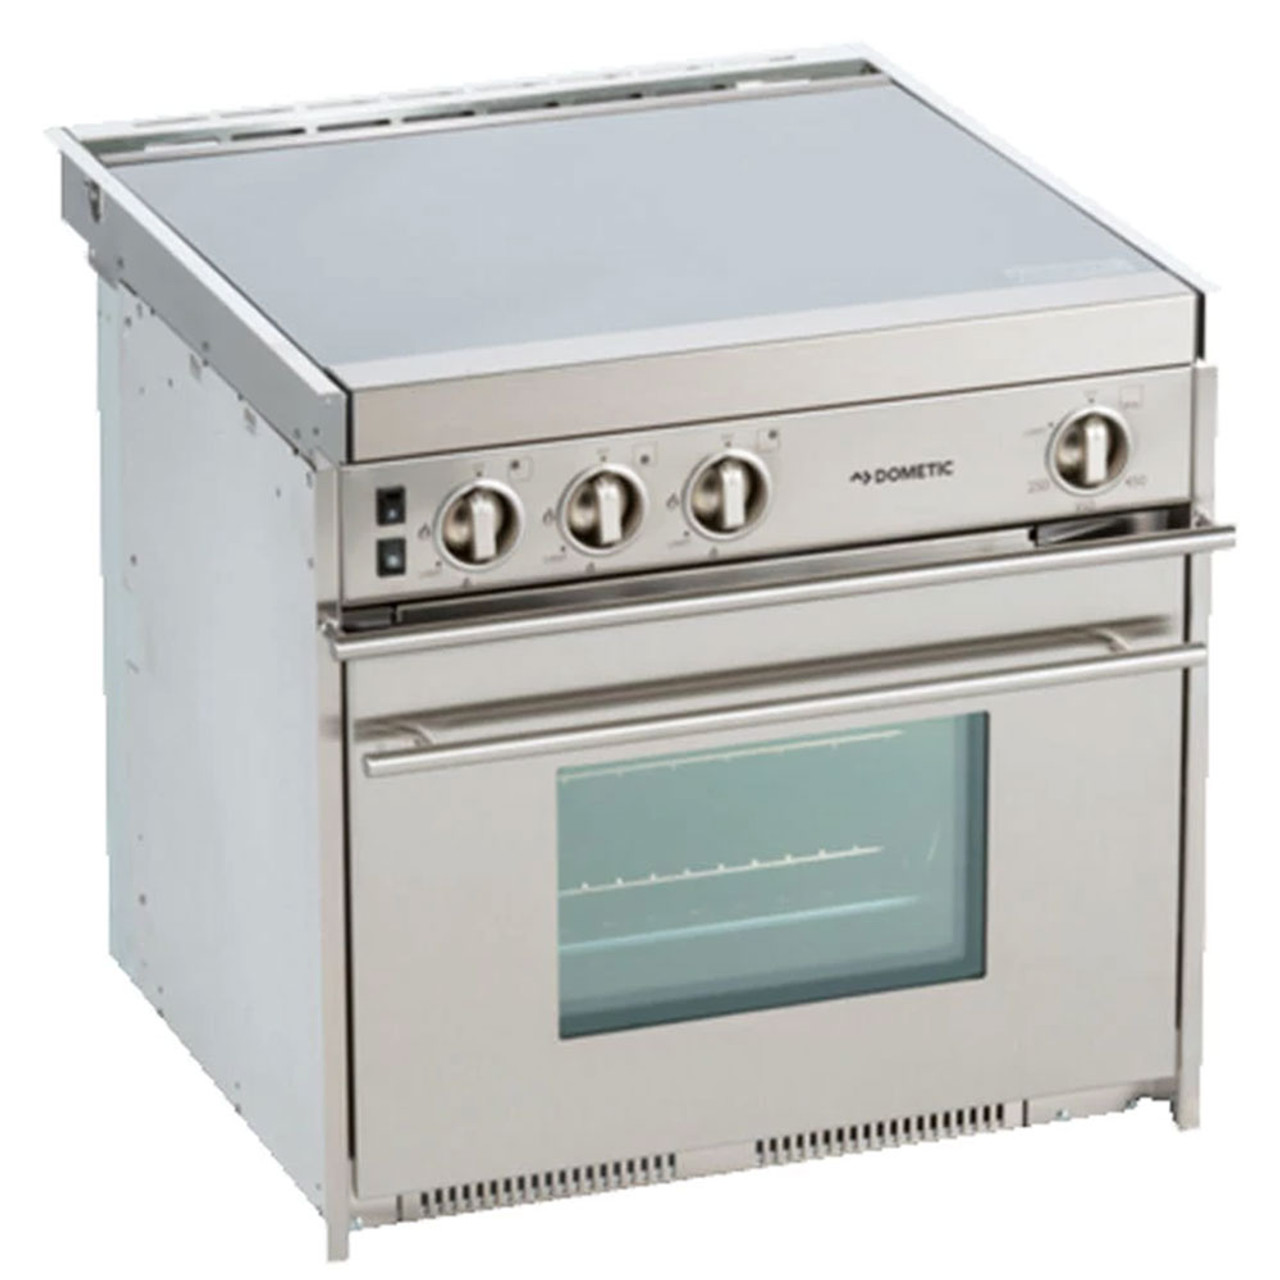 dometic cu 434 propane 3 burner stainless steel stove oven